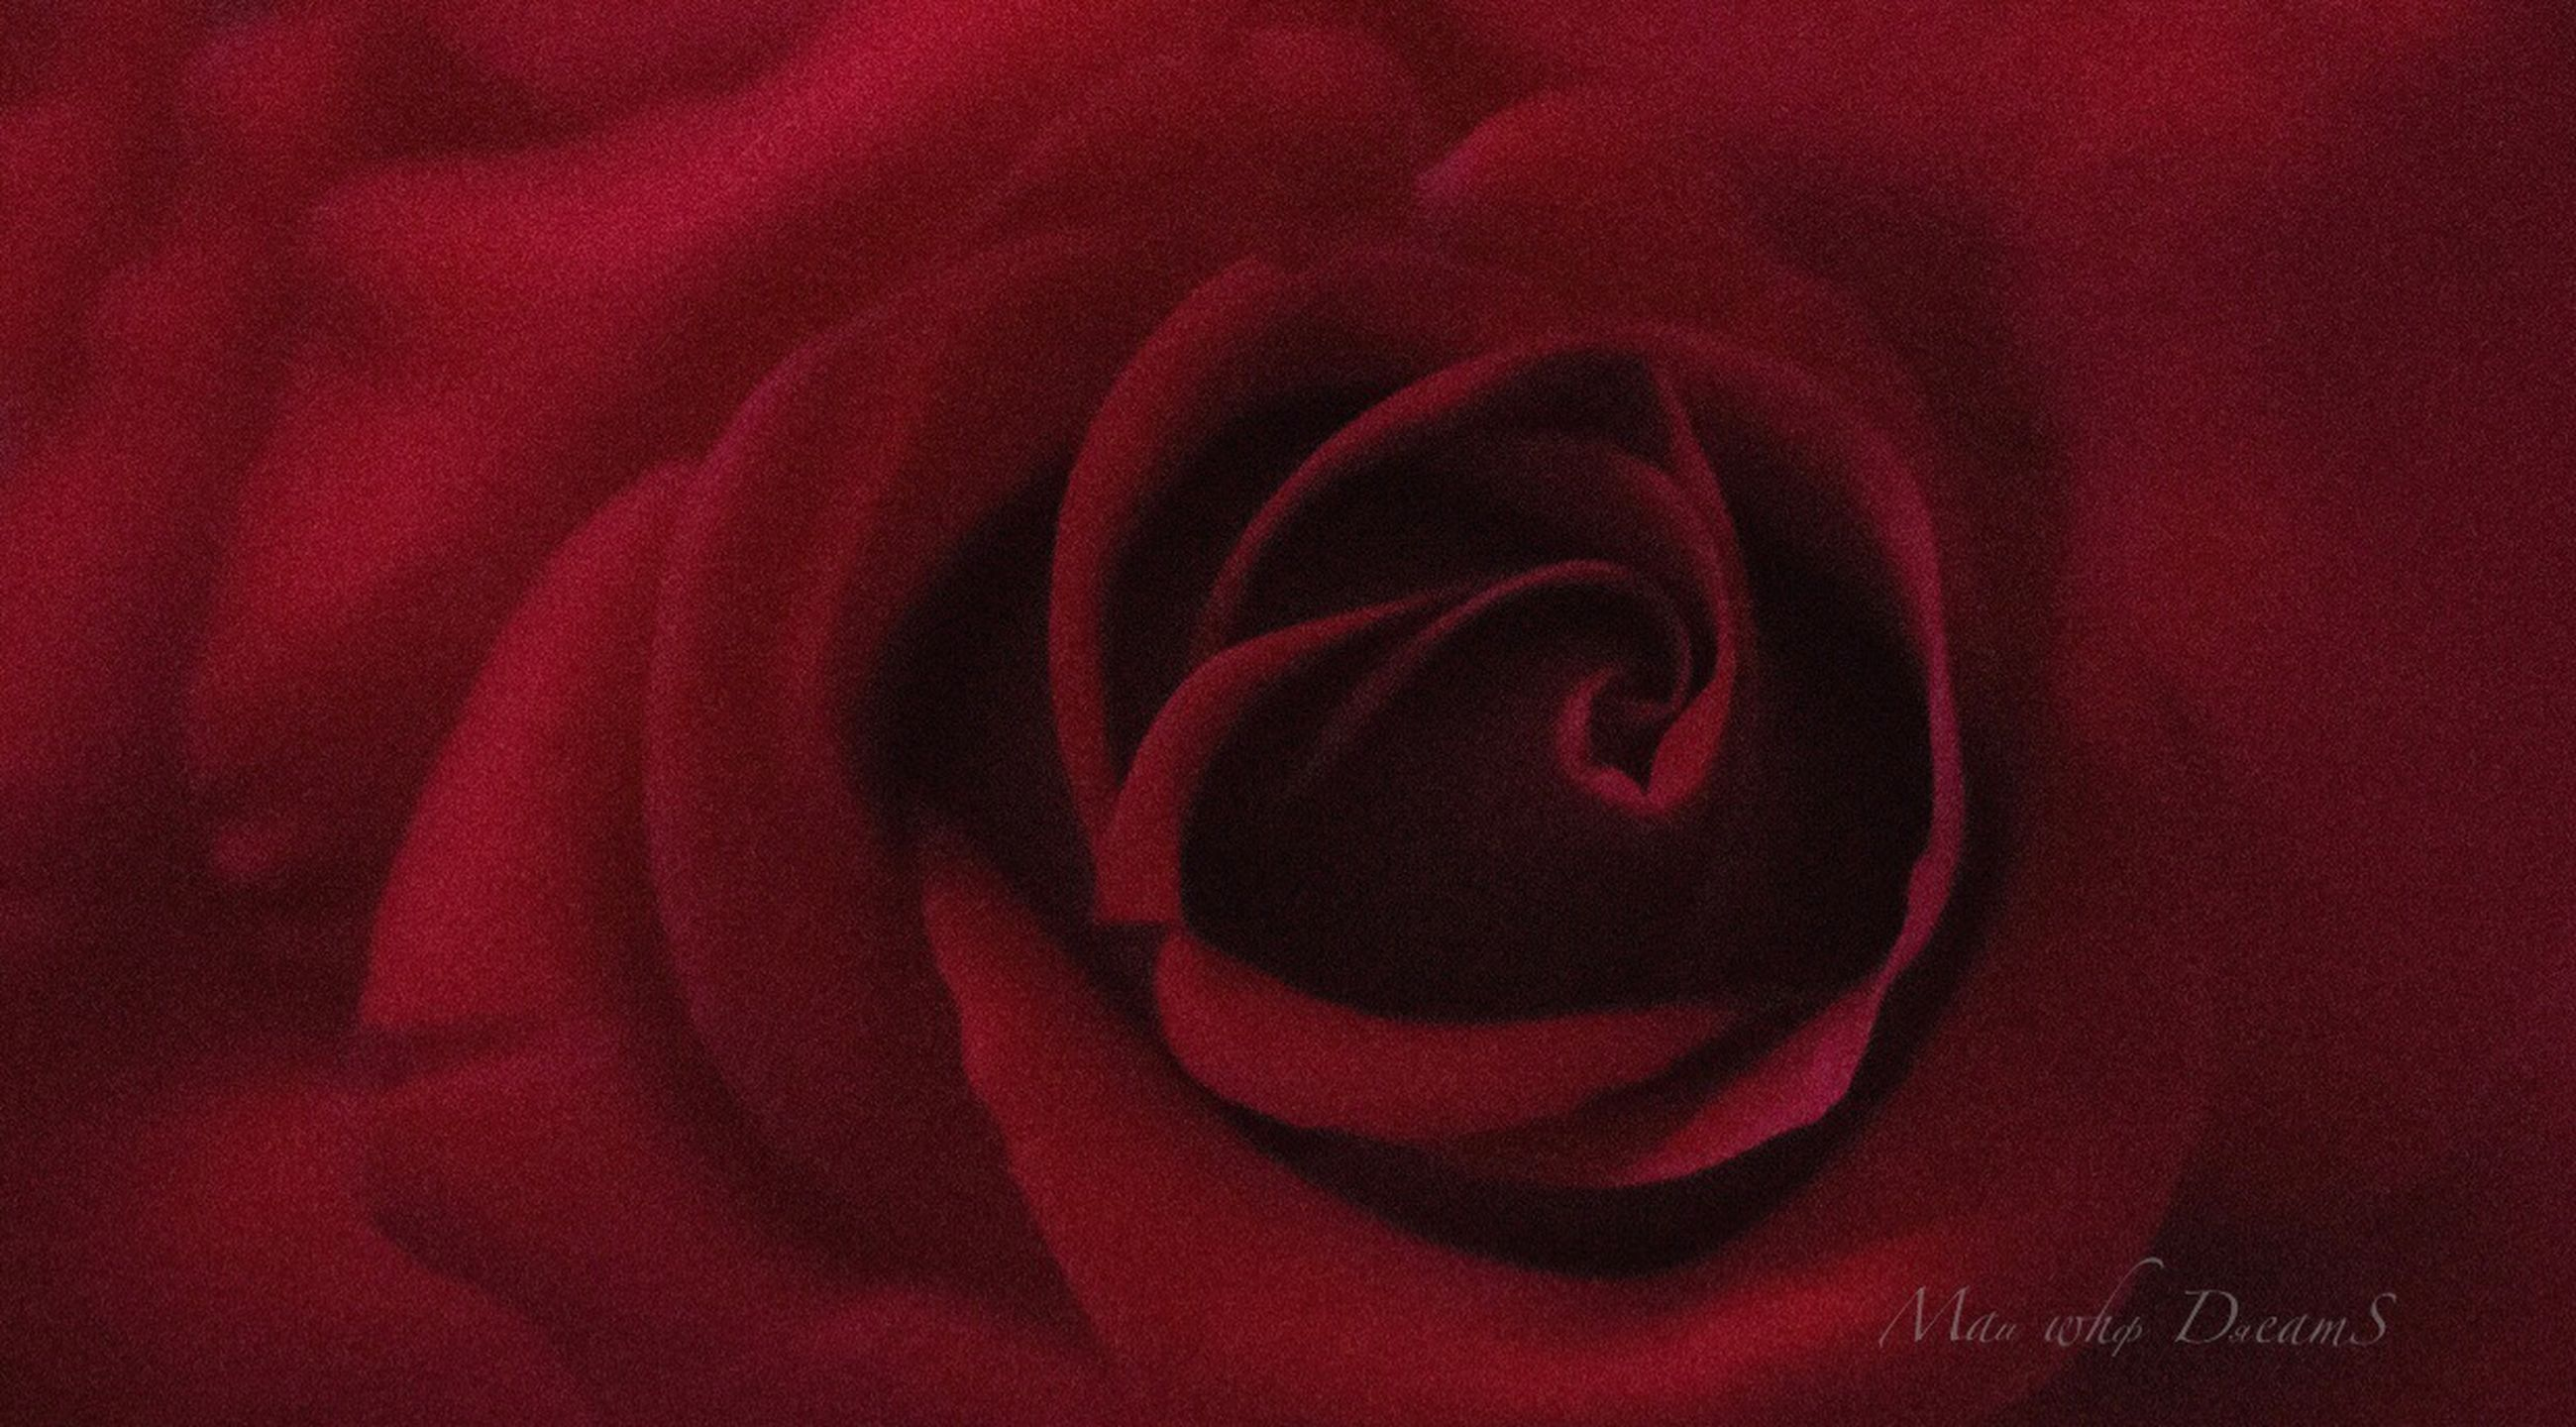 flower, flowering plant, beauty in nature, red, plant, rose, close-up, petal, inflorescence, flower head, rose - flower, fragility, freshness, vulnerability, nature, no people, full frame, indoors, growth, valentine's day - holiday